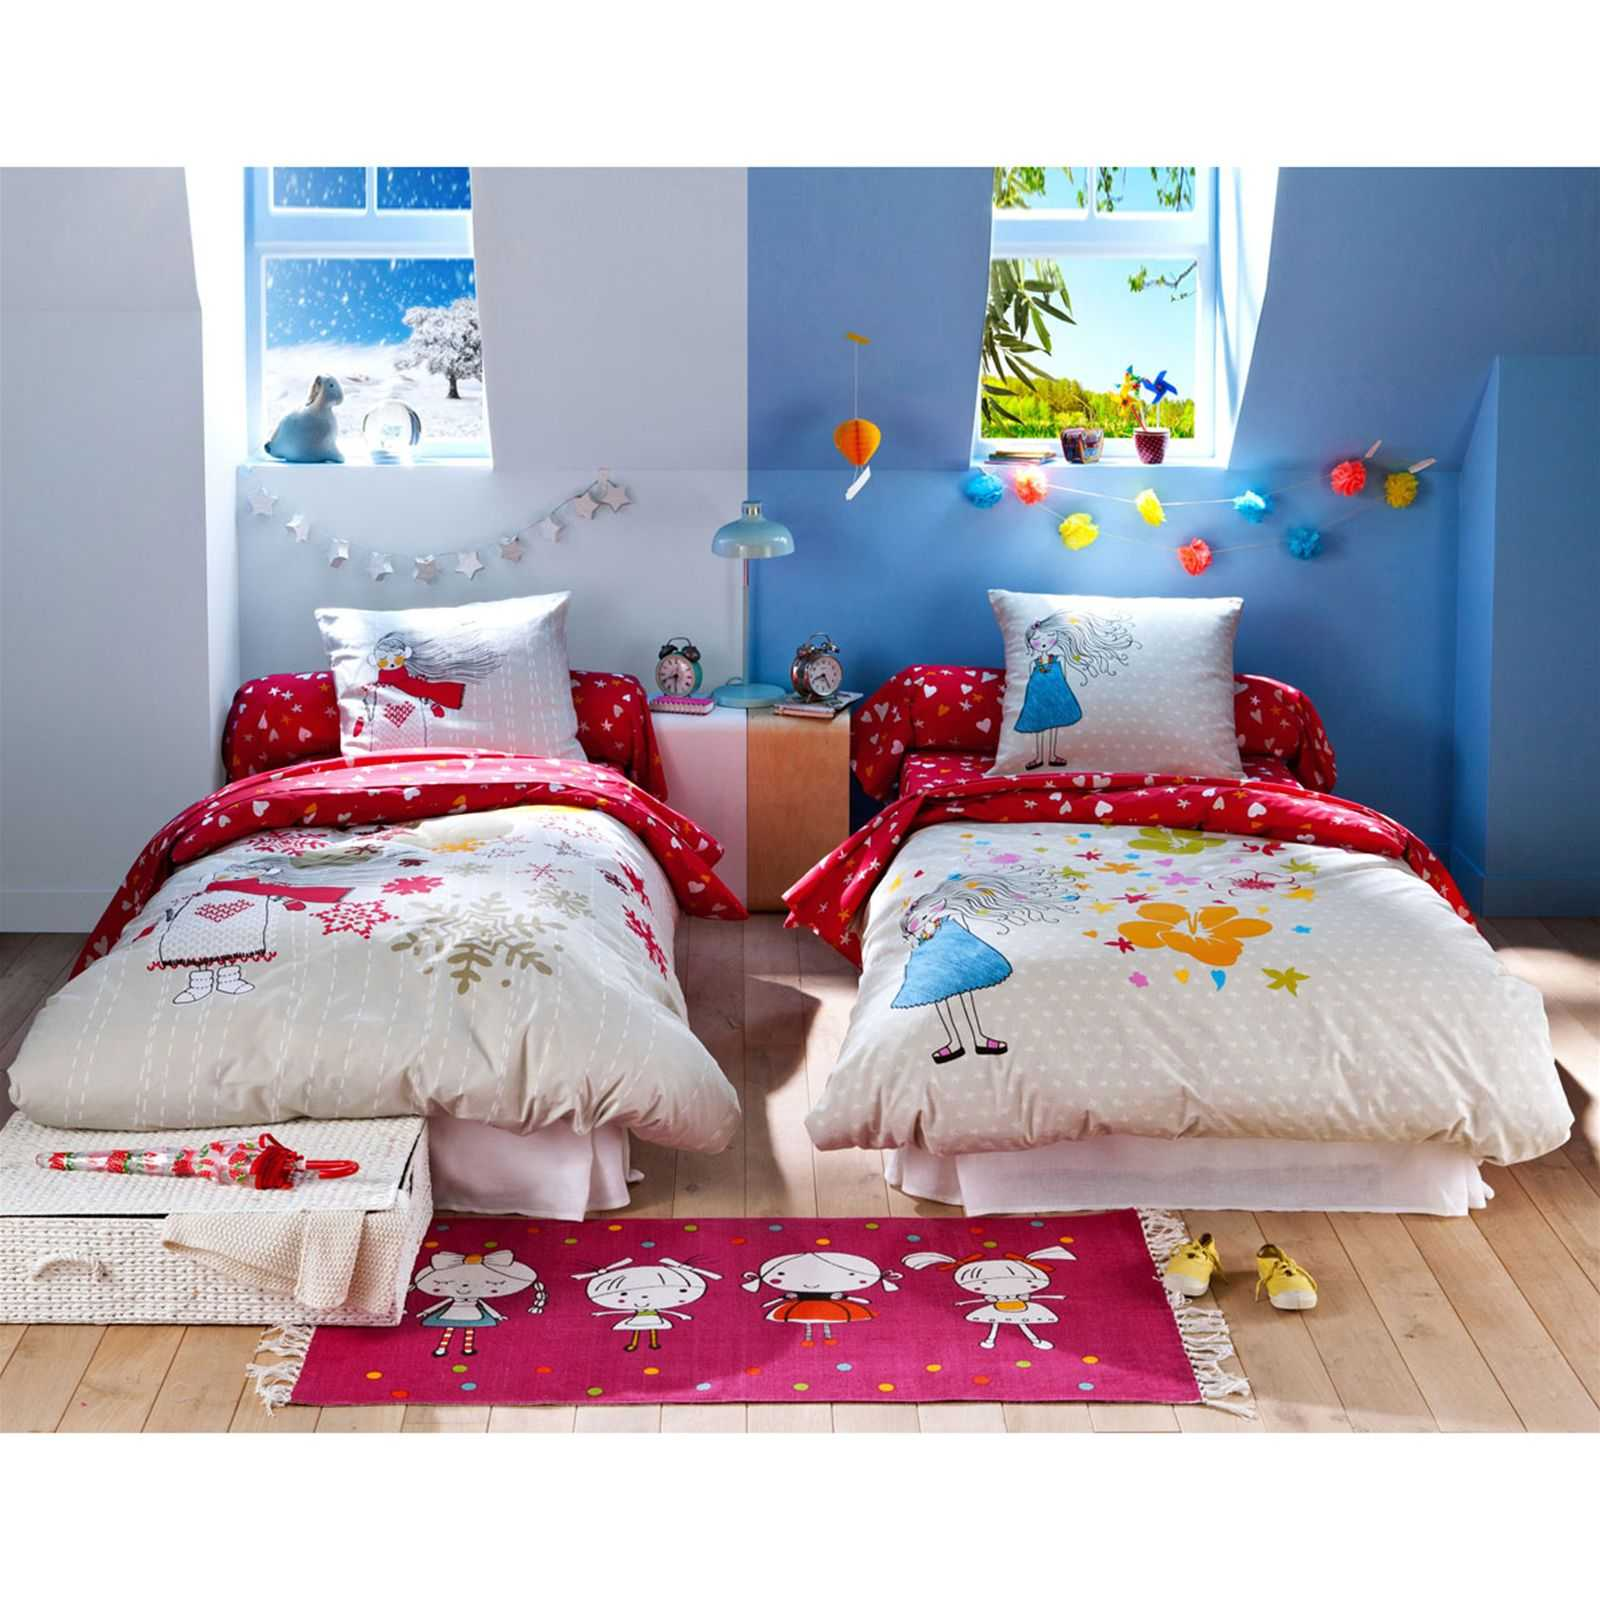 becquet housse de couette enfant double face 2 saisons blanc brandalley. Black Bedroom Furniture Sets. Home Design Ideas